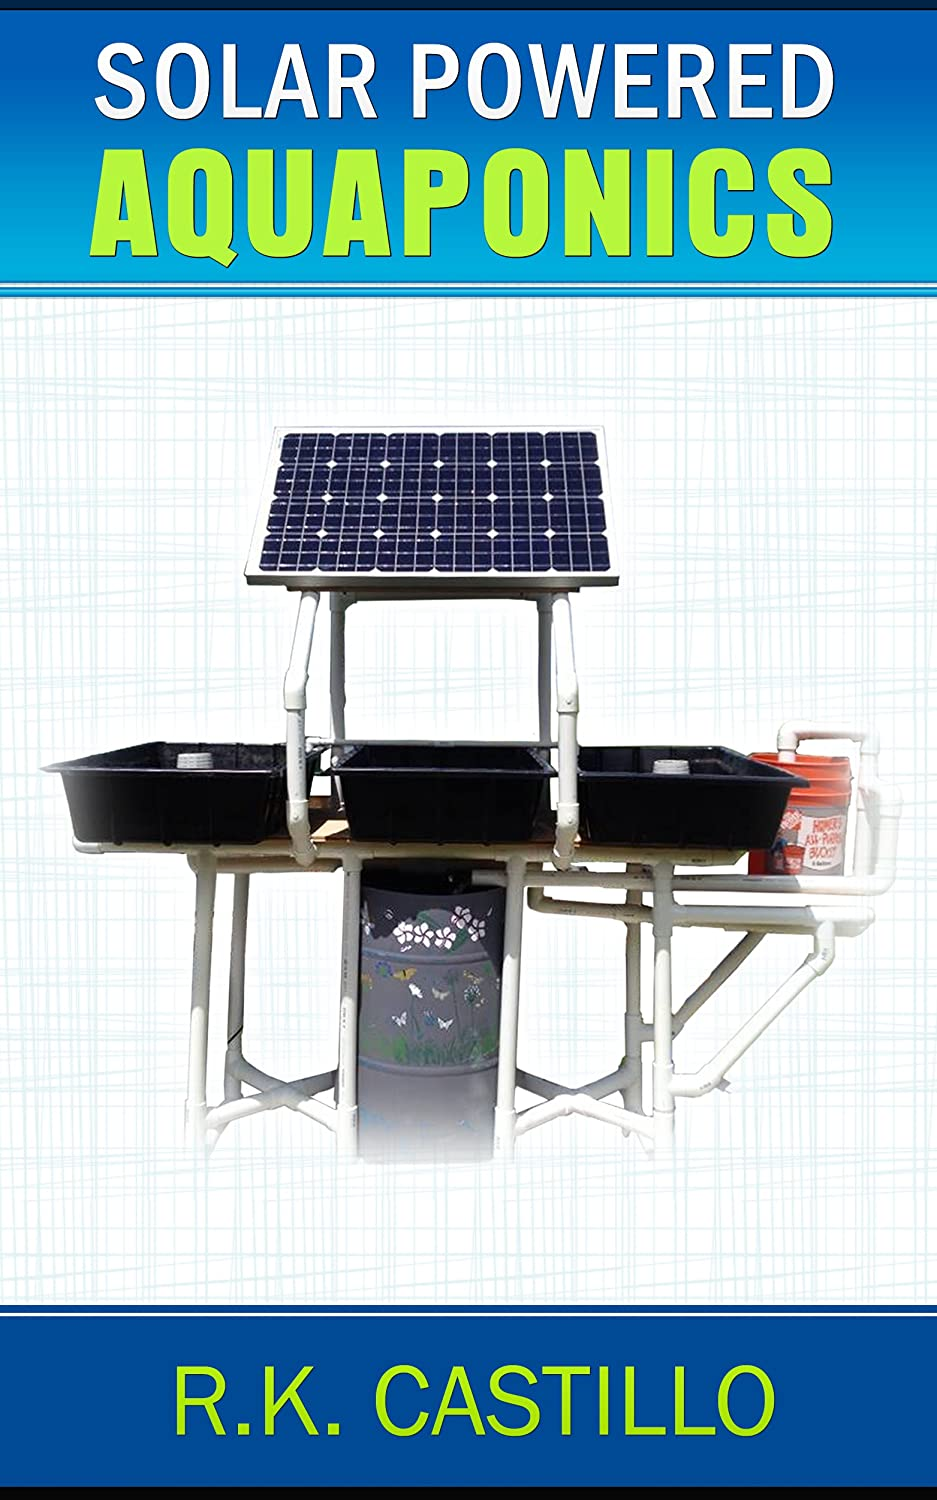 http://www.amazon.com/Solar-Powered-Aquaponics-Setting-System-ebook/dp/B00OWLR7M2/ref=as_sl_pc_ss_til?tag=lettfromahome-20&linkCode=w01&linkId=JX6UBPWOXHW2Y4TK&creativeASIN=B00OWLR7M2